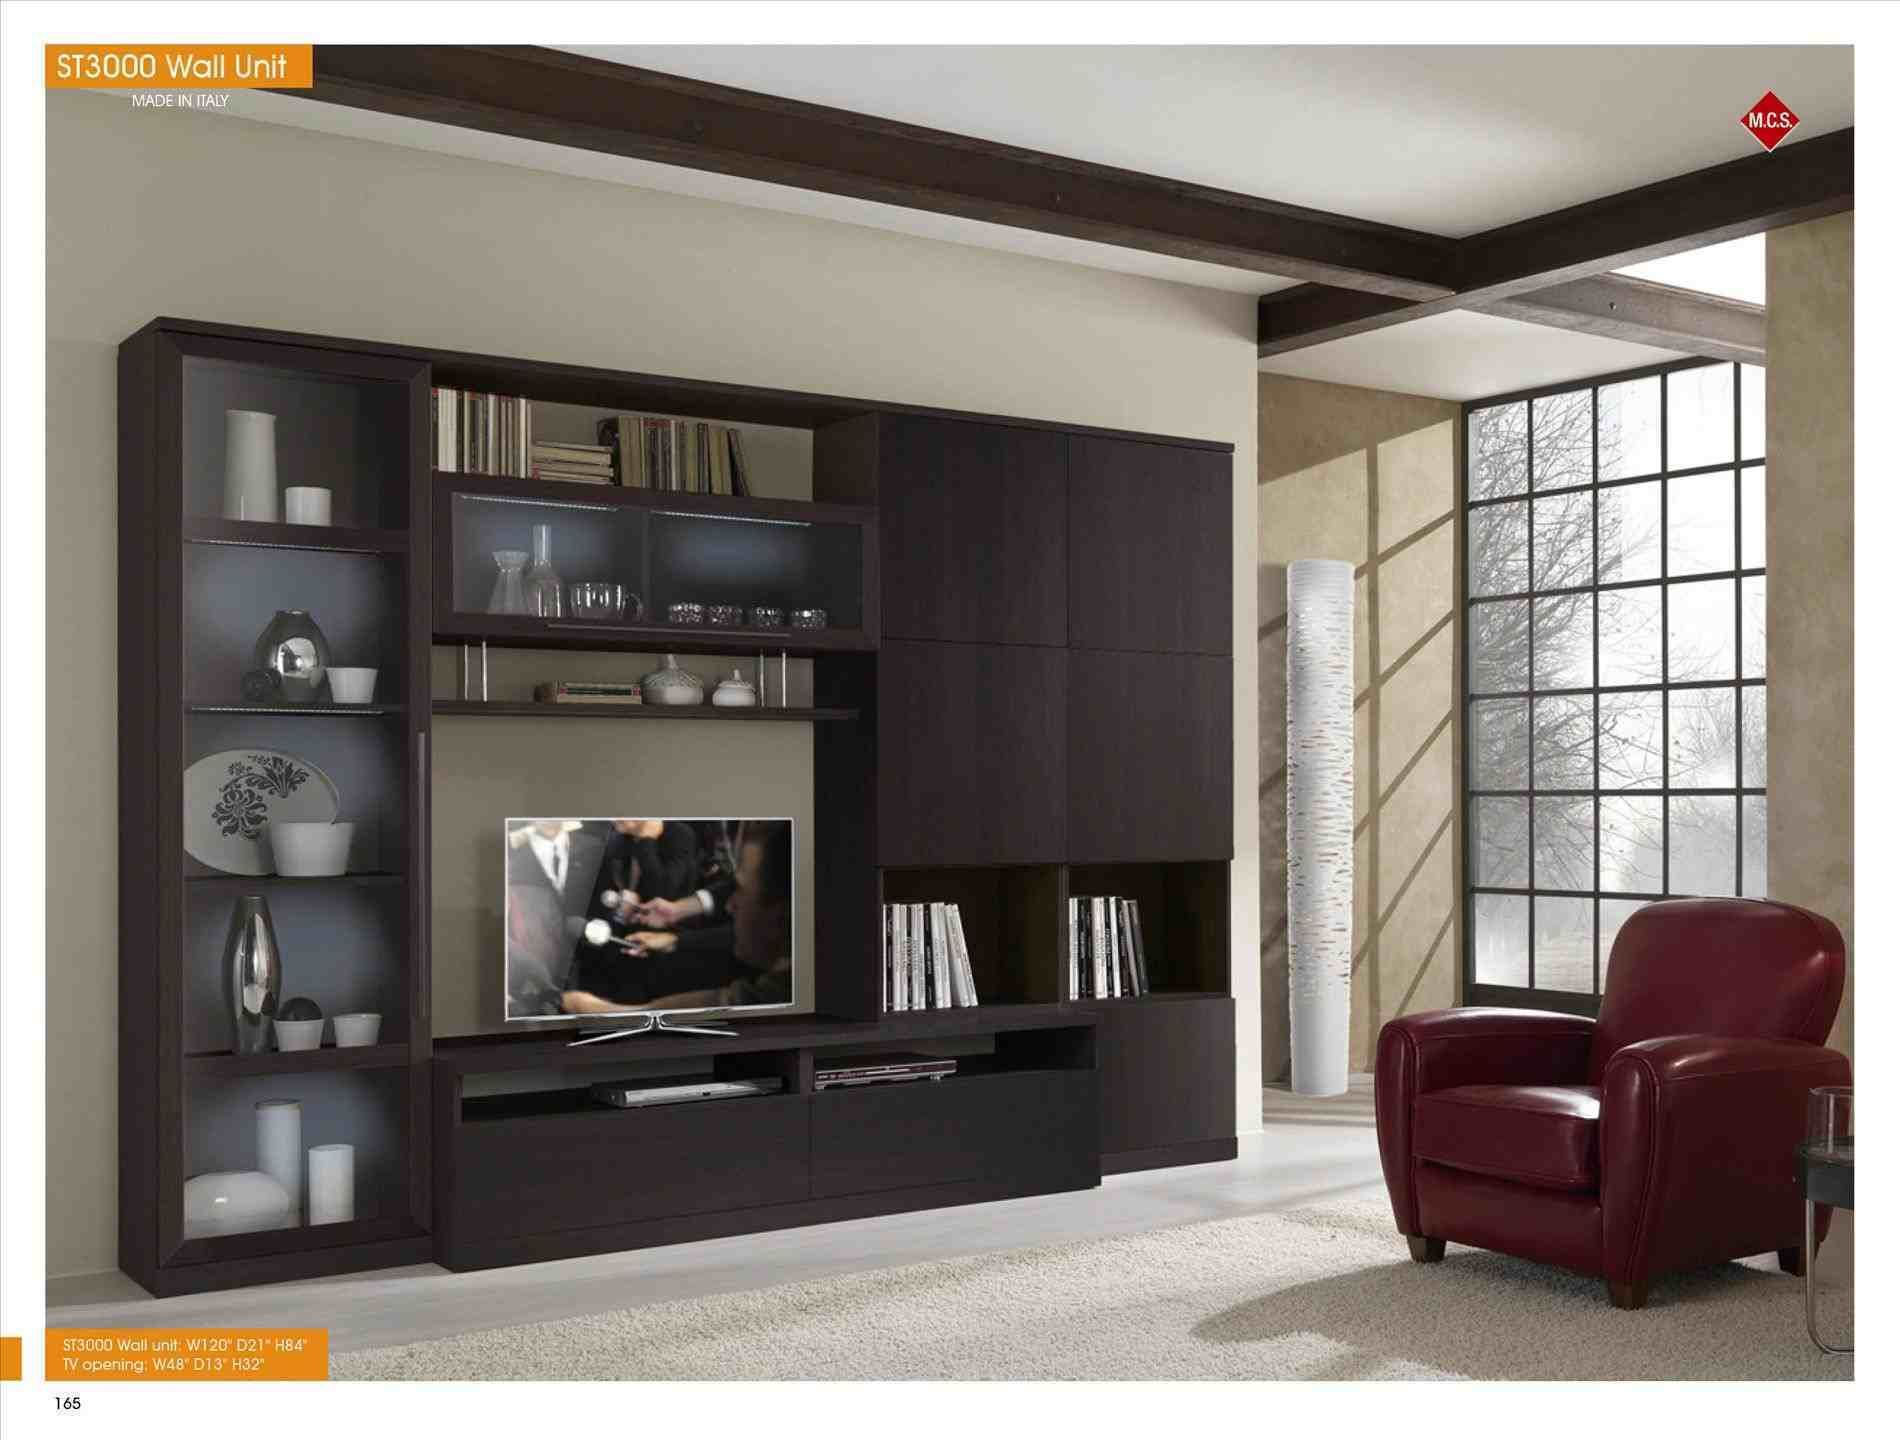 Style Tv Cabinet Led Wall Unit Design Units Rhrmzmecom India Modern Living Room Wall Units Modern Wall Units Entertainment Center Wall Unit